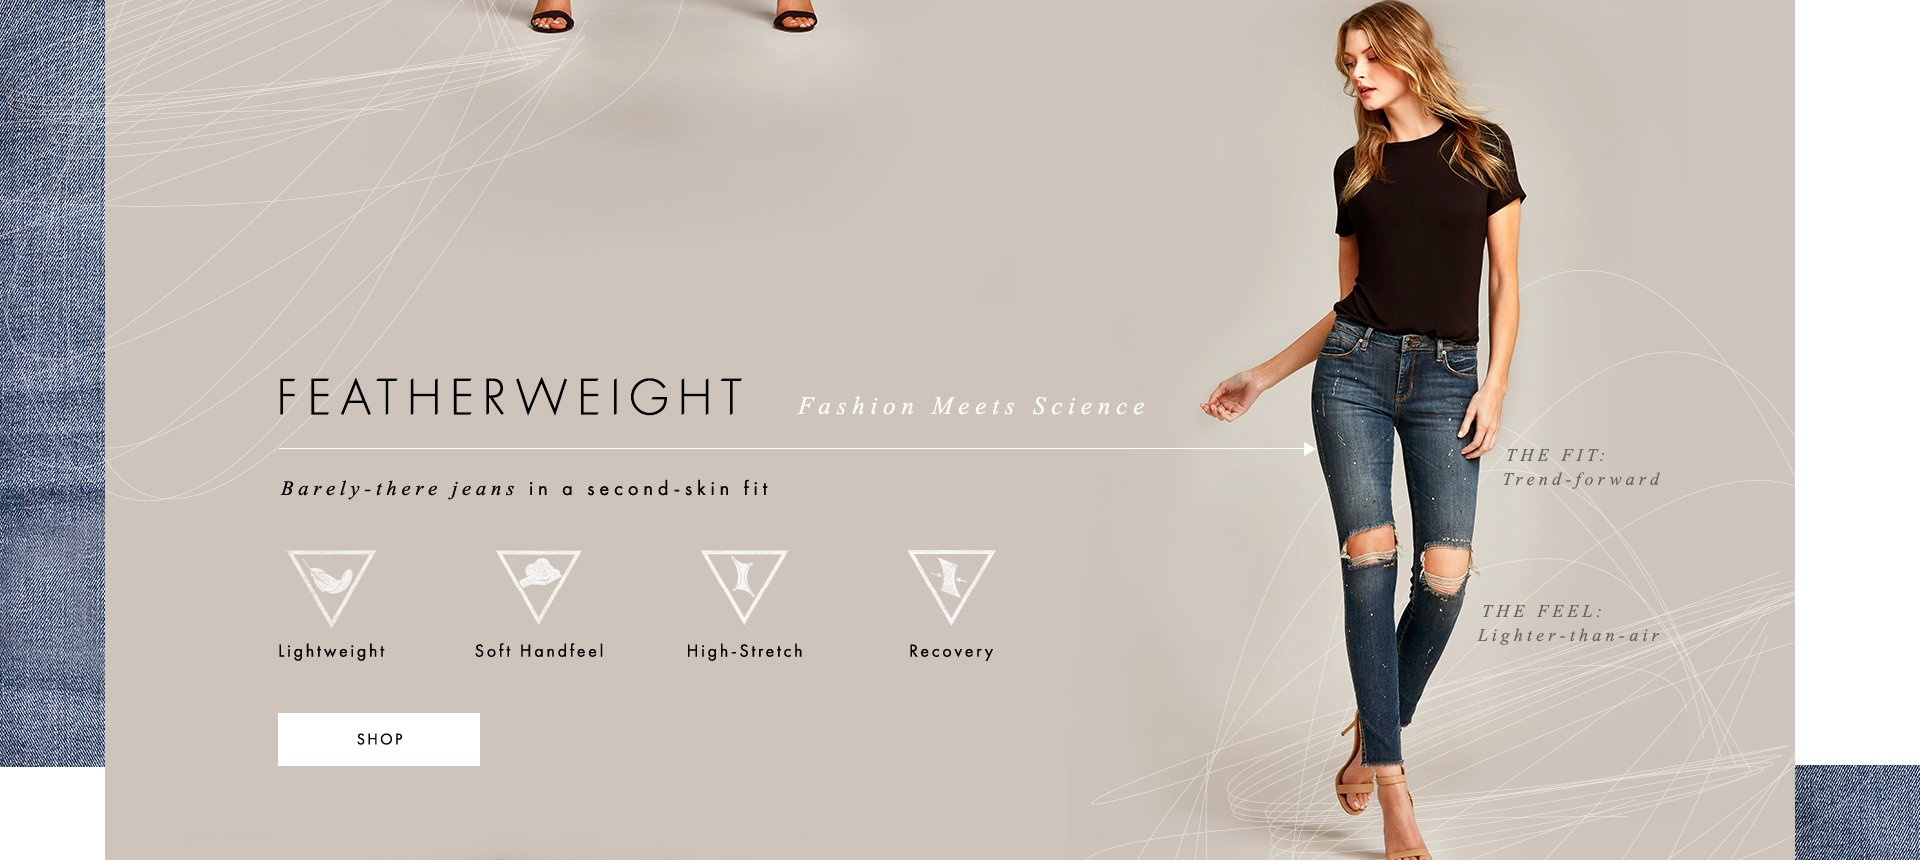 Featherweight Fashion Meets Science